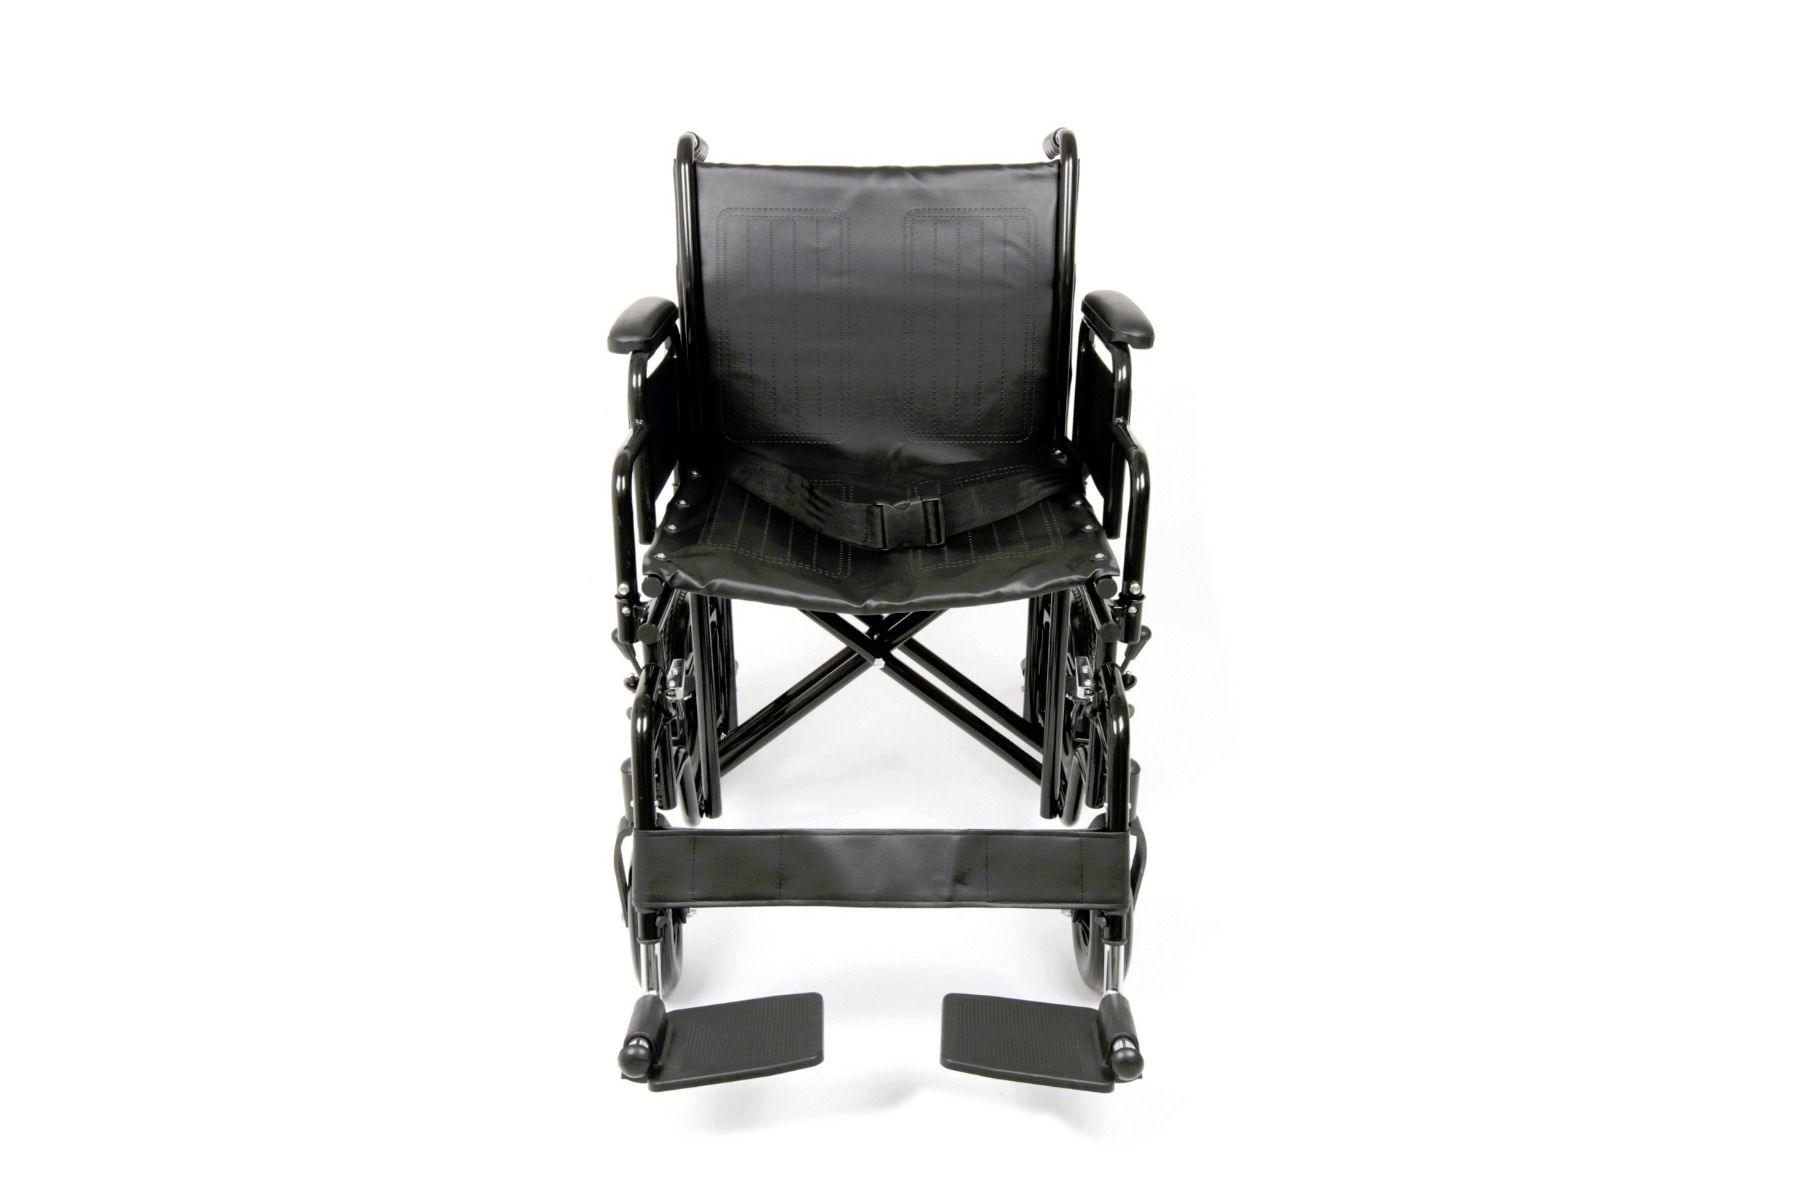 Front view of the Ugo Atlas bariatric steel transit wheelchair